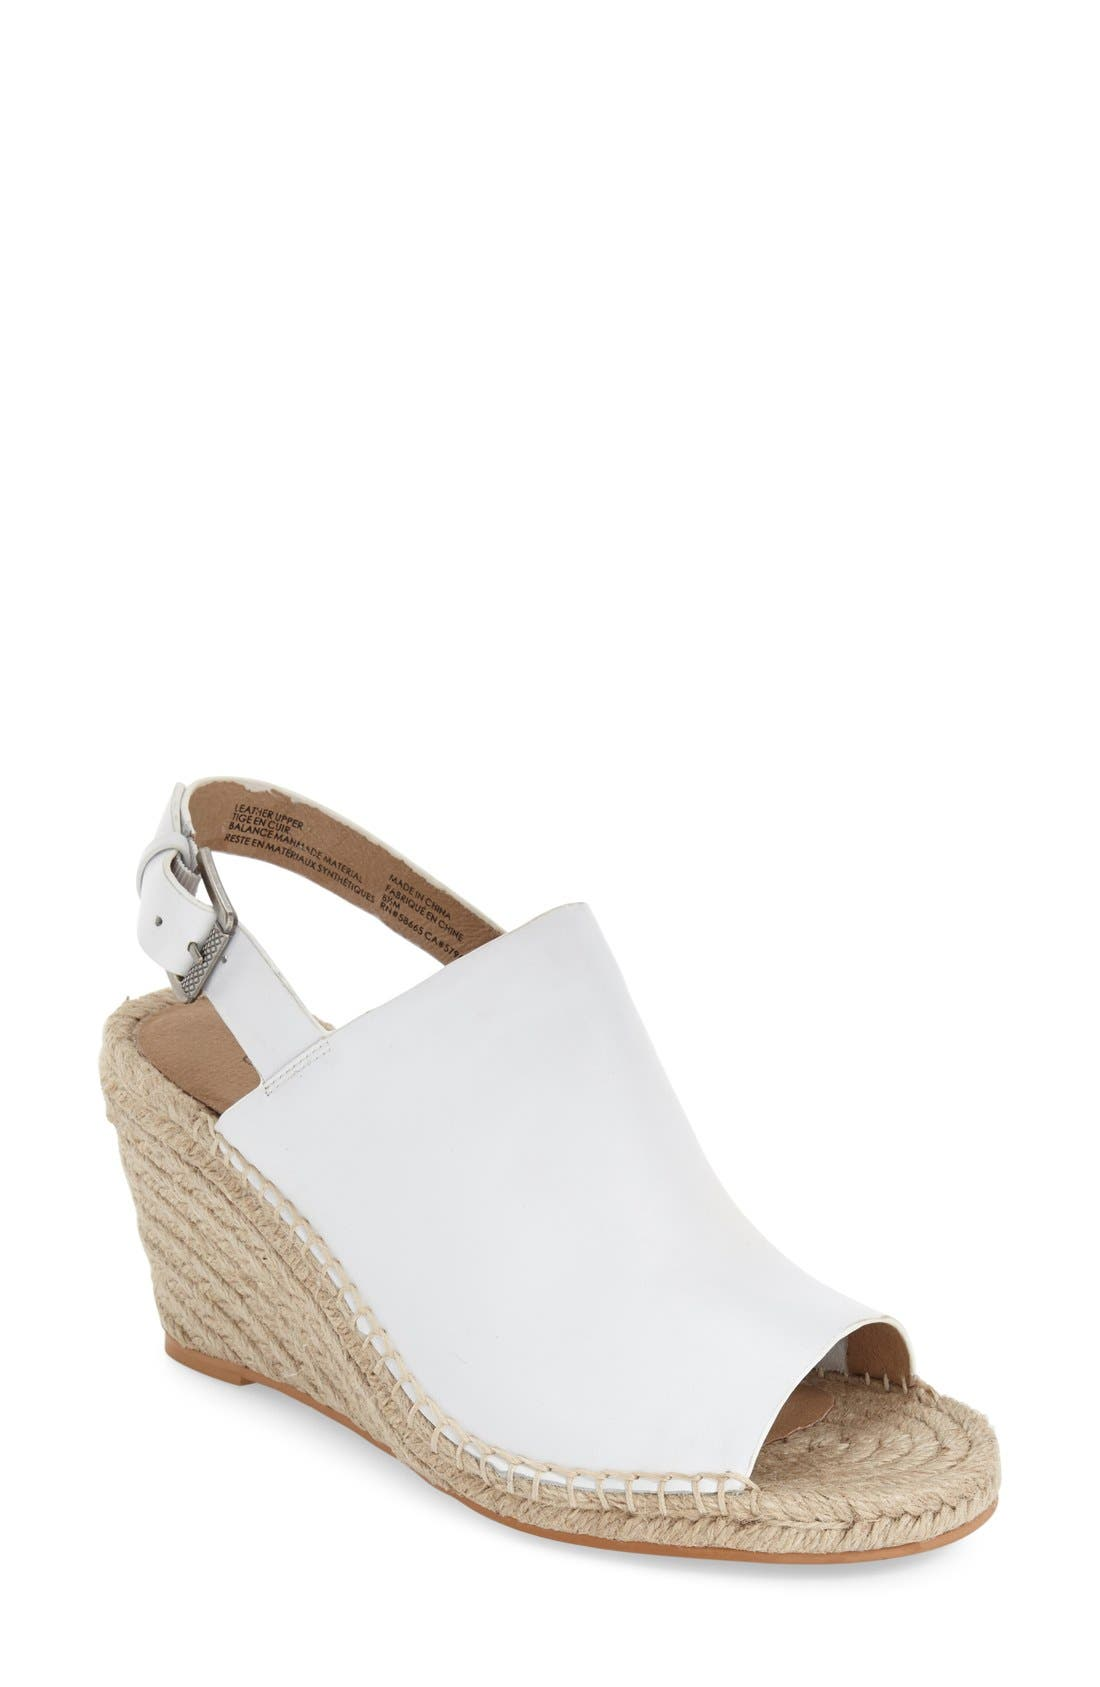 Sutton Slingback Sandal,                         Main,                         color, WHITE LEATHER